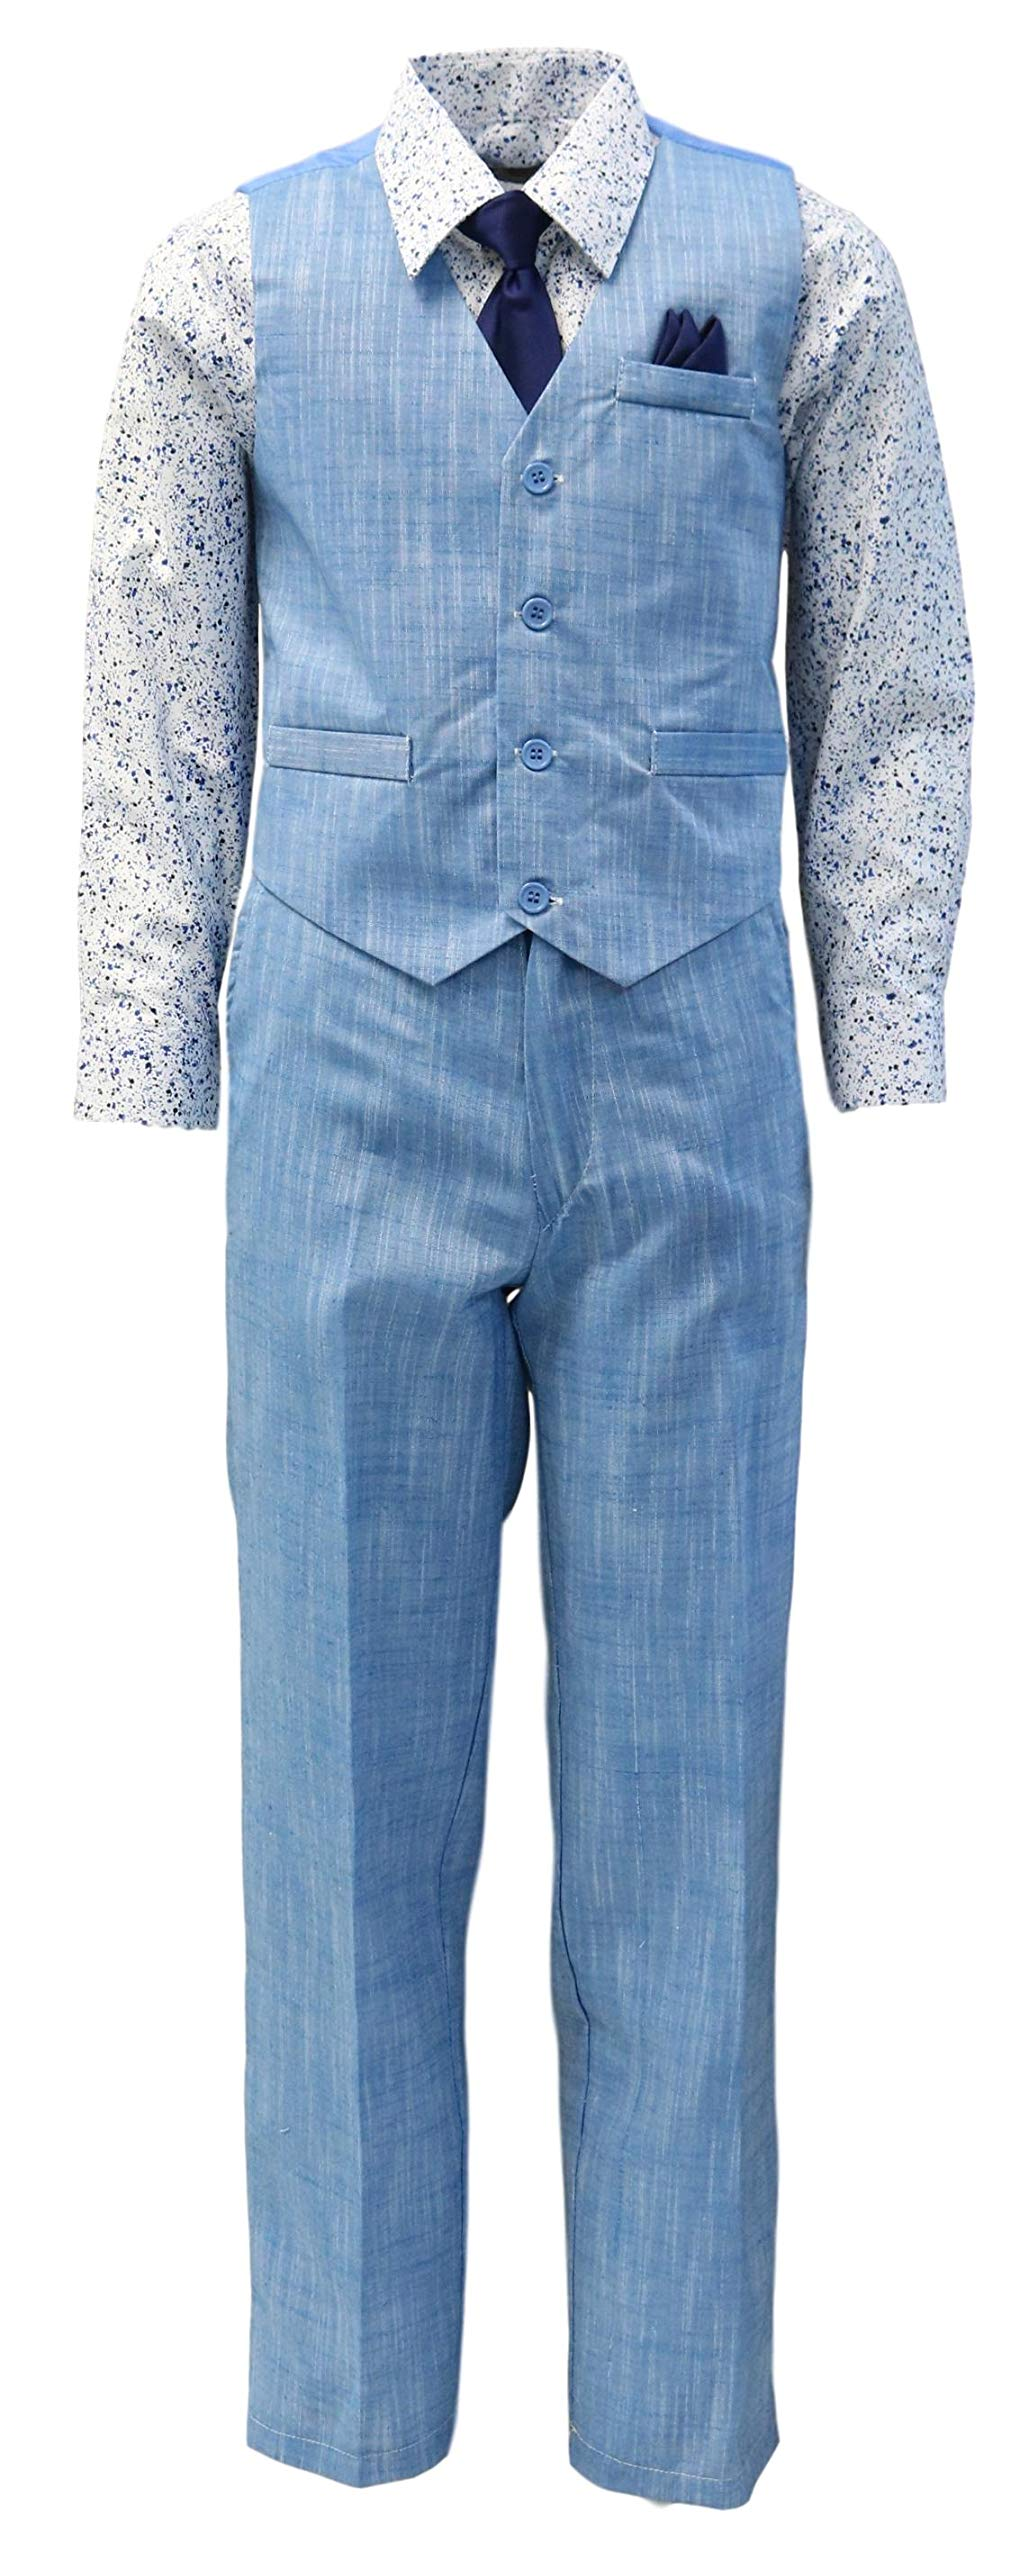 Vittorino Boy's Linen Look 4 Piece Suit Set with Vest Pants Shirt and Tie, Blue - Navy, 8